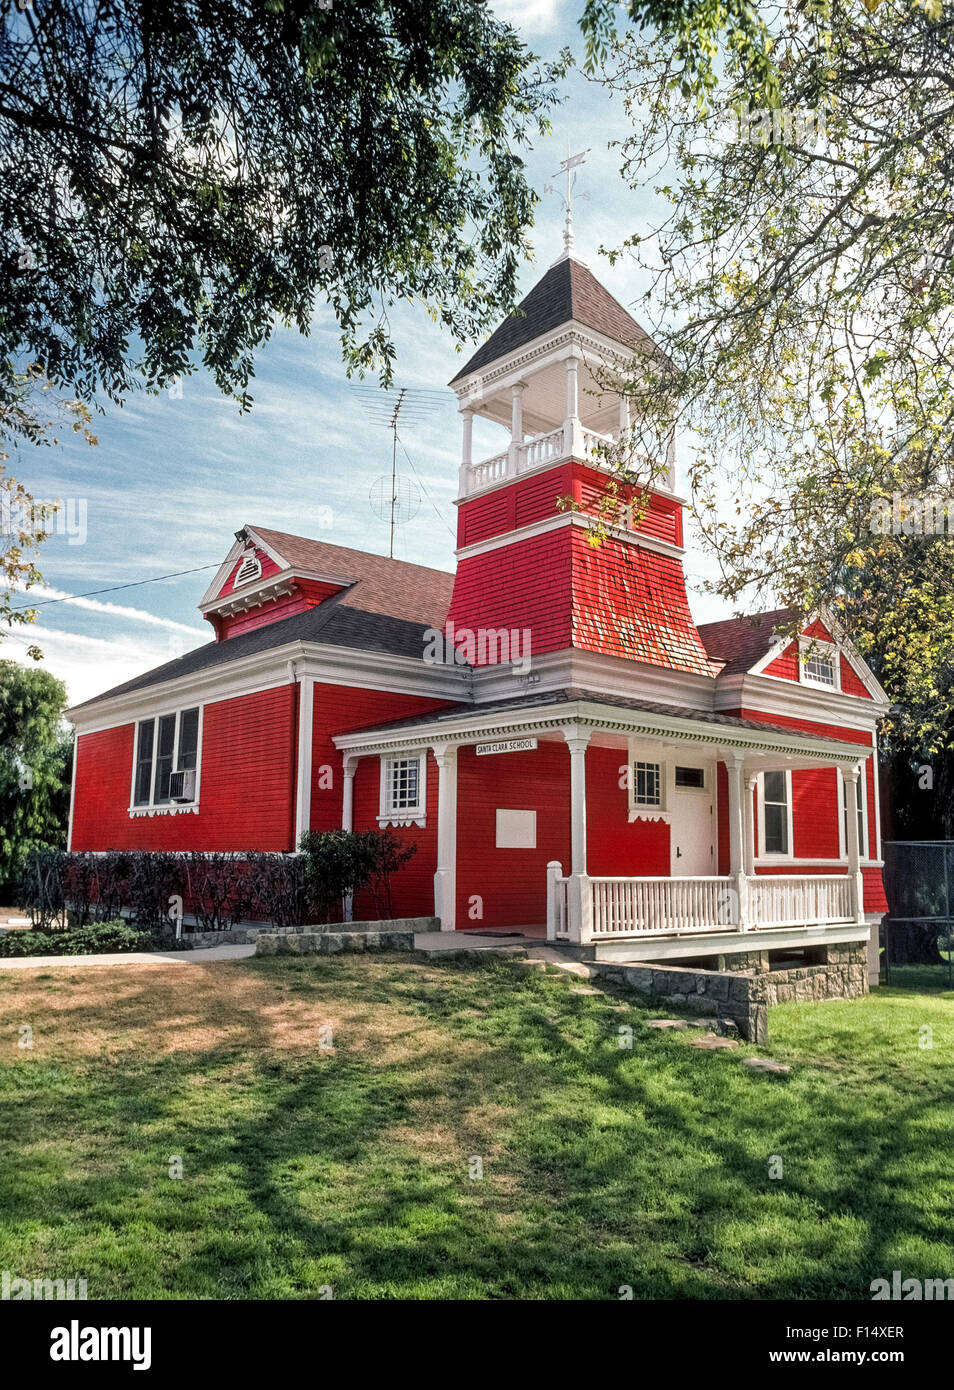 The historic little red Santa Clara School was built in 1896 and still serves elementary students in kindergarten Stock Photo